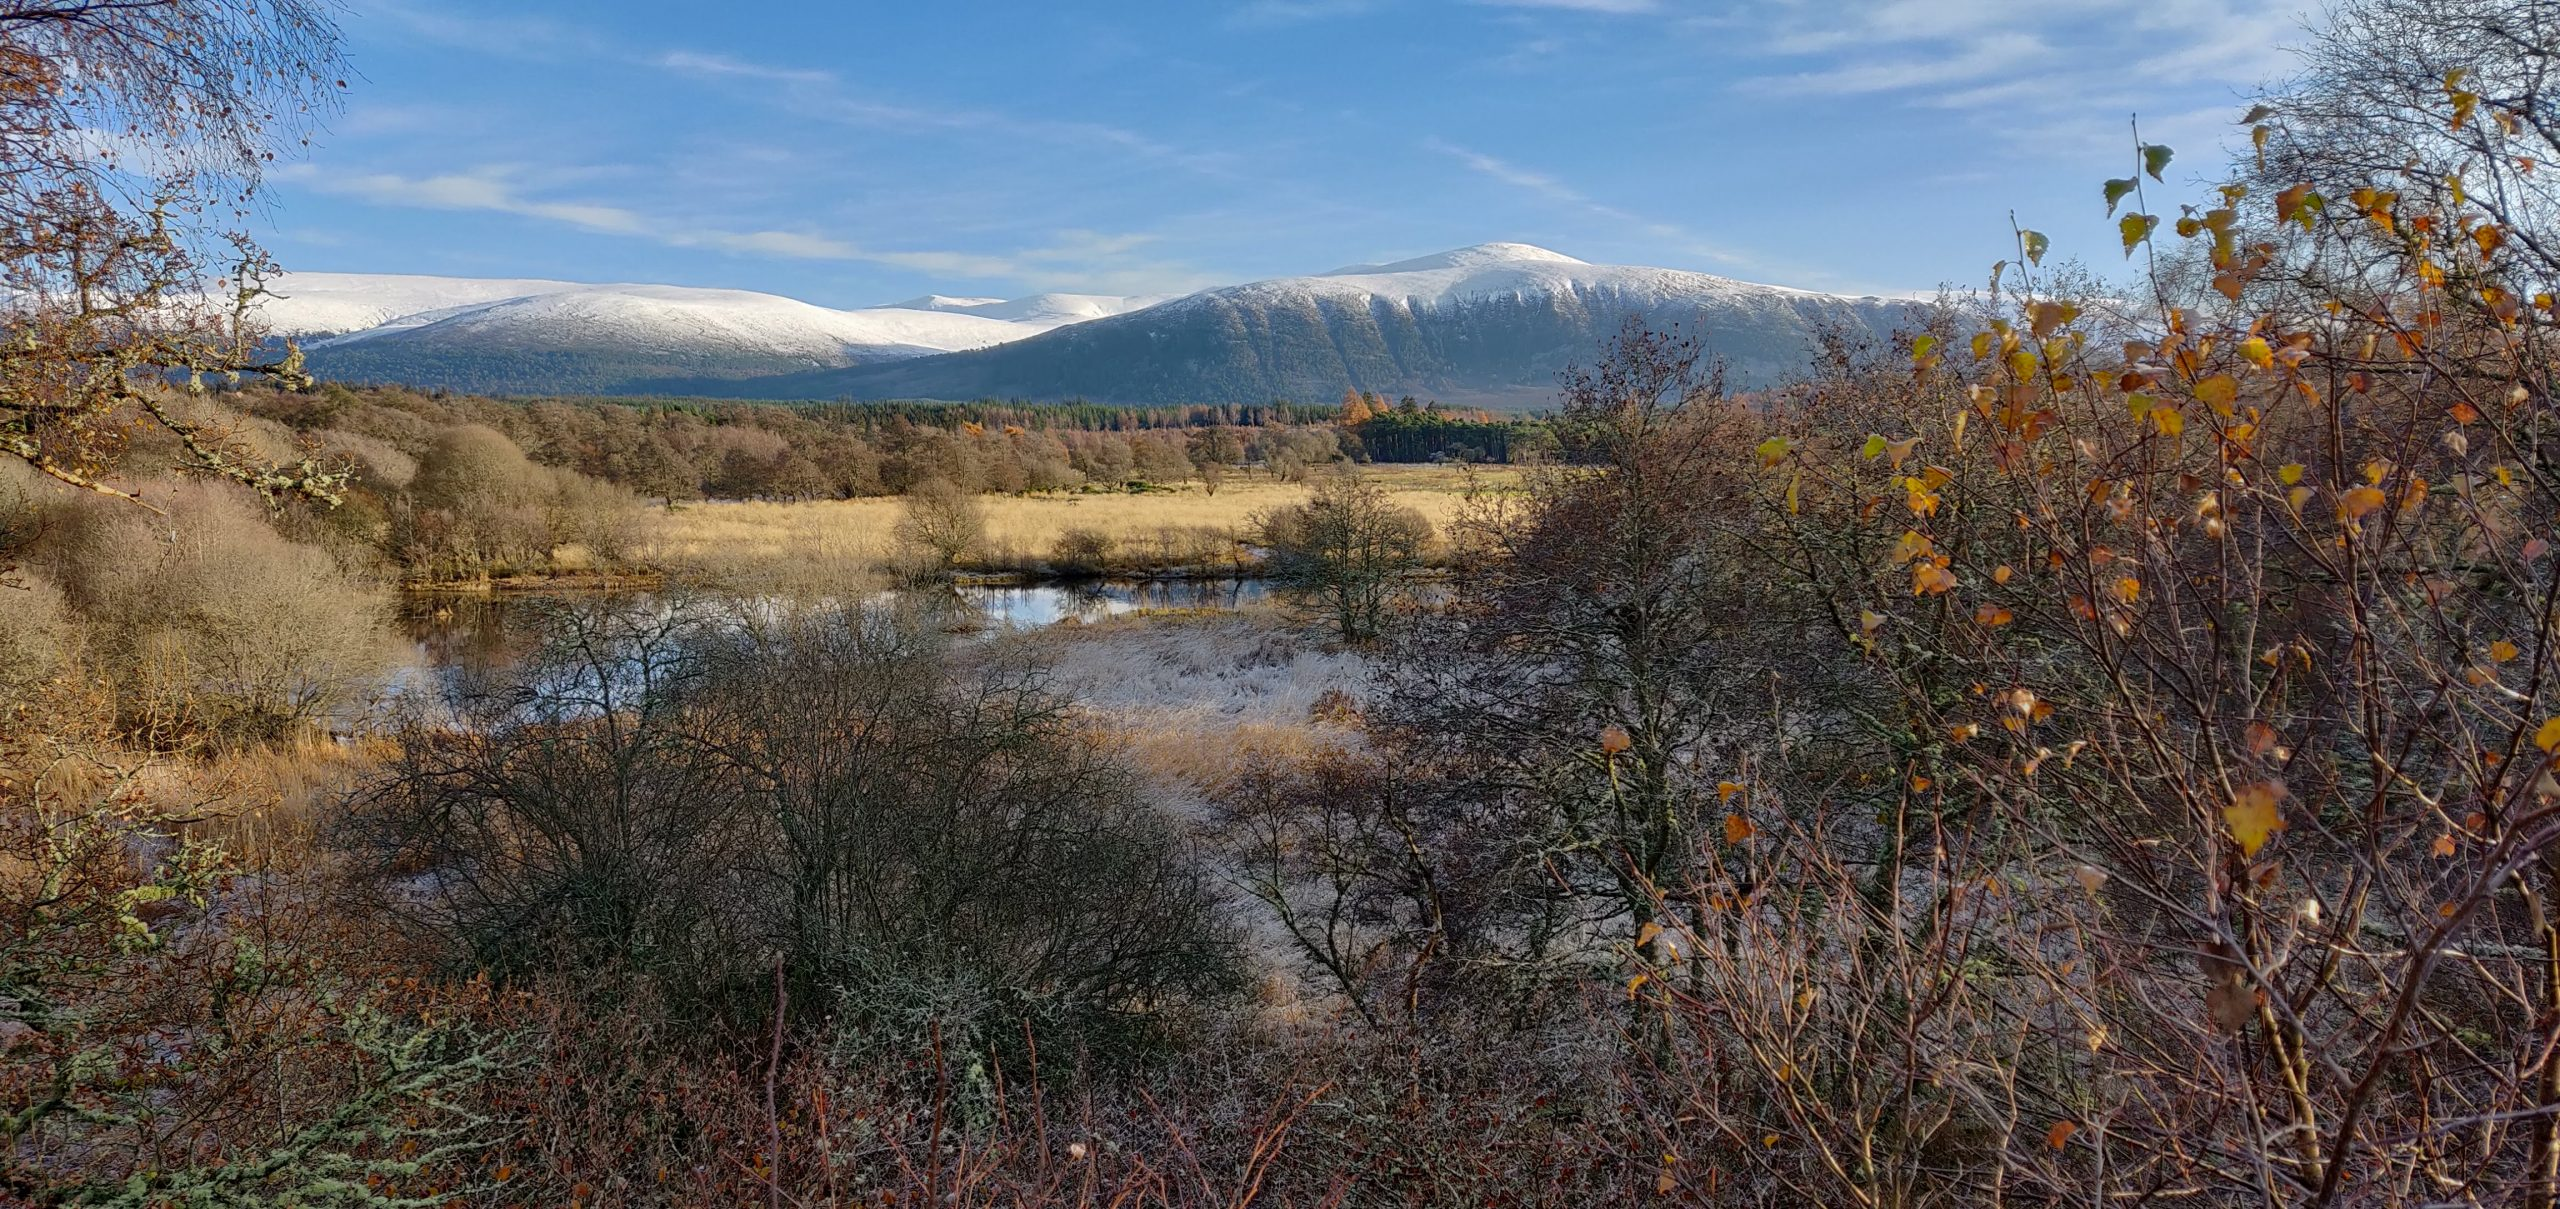 The Feshie Hills in snow, Cairngorms